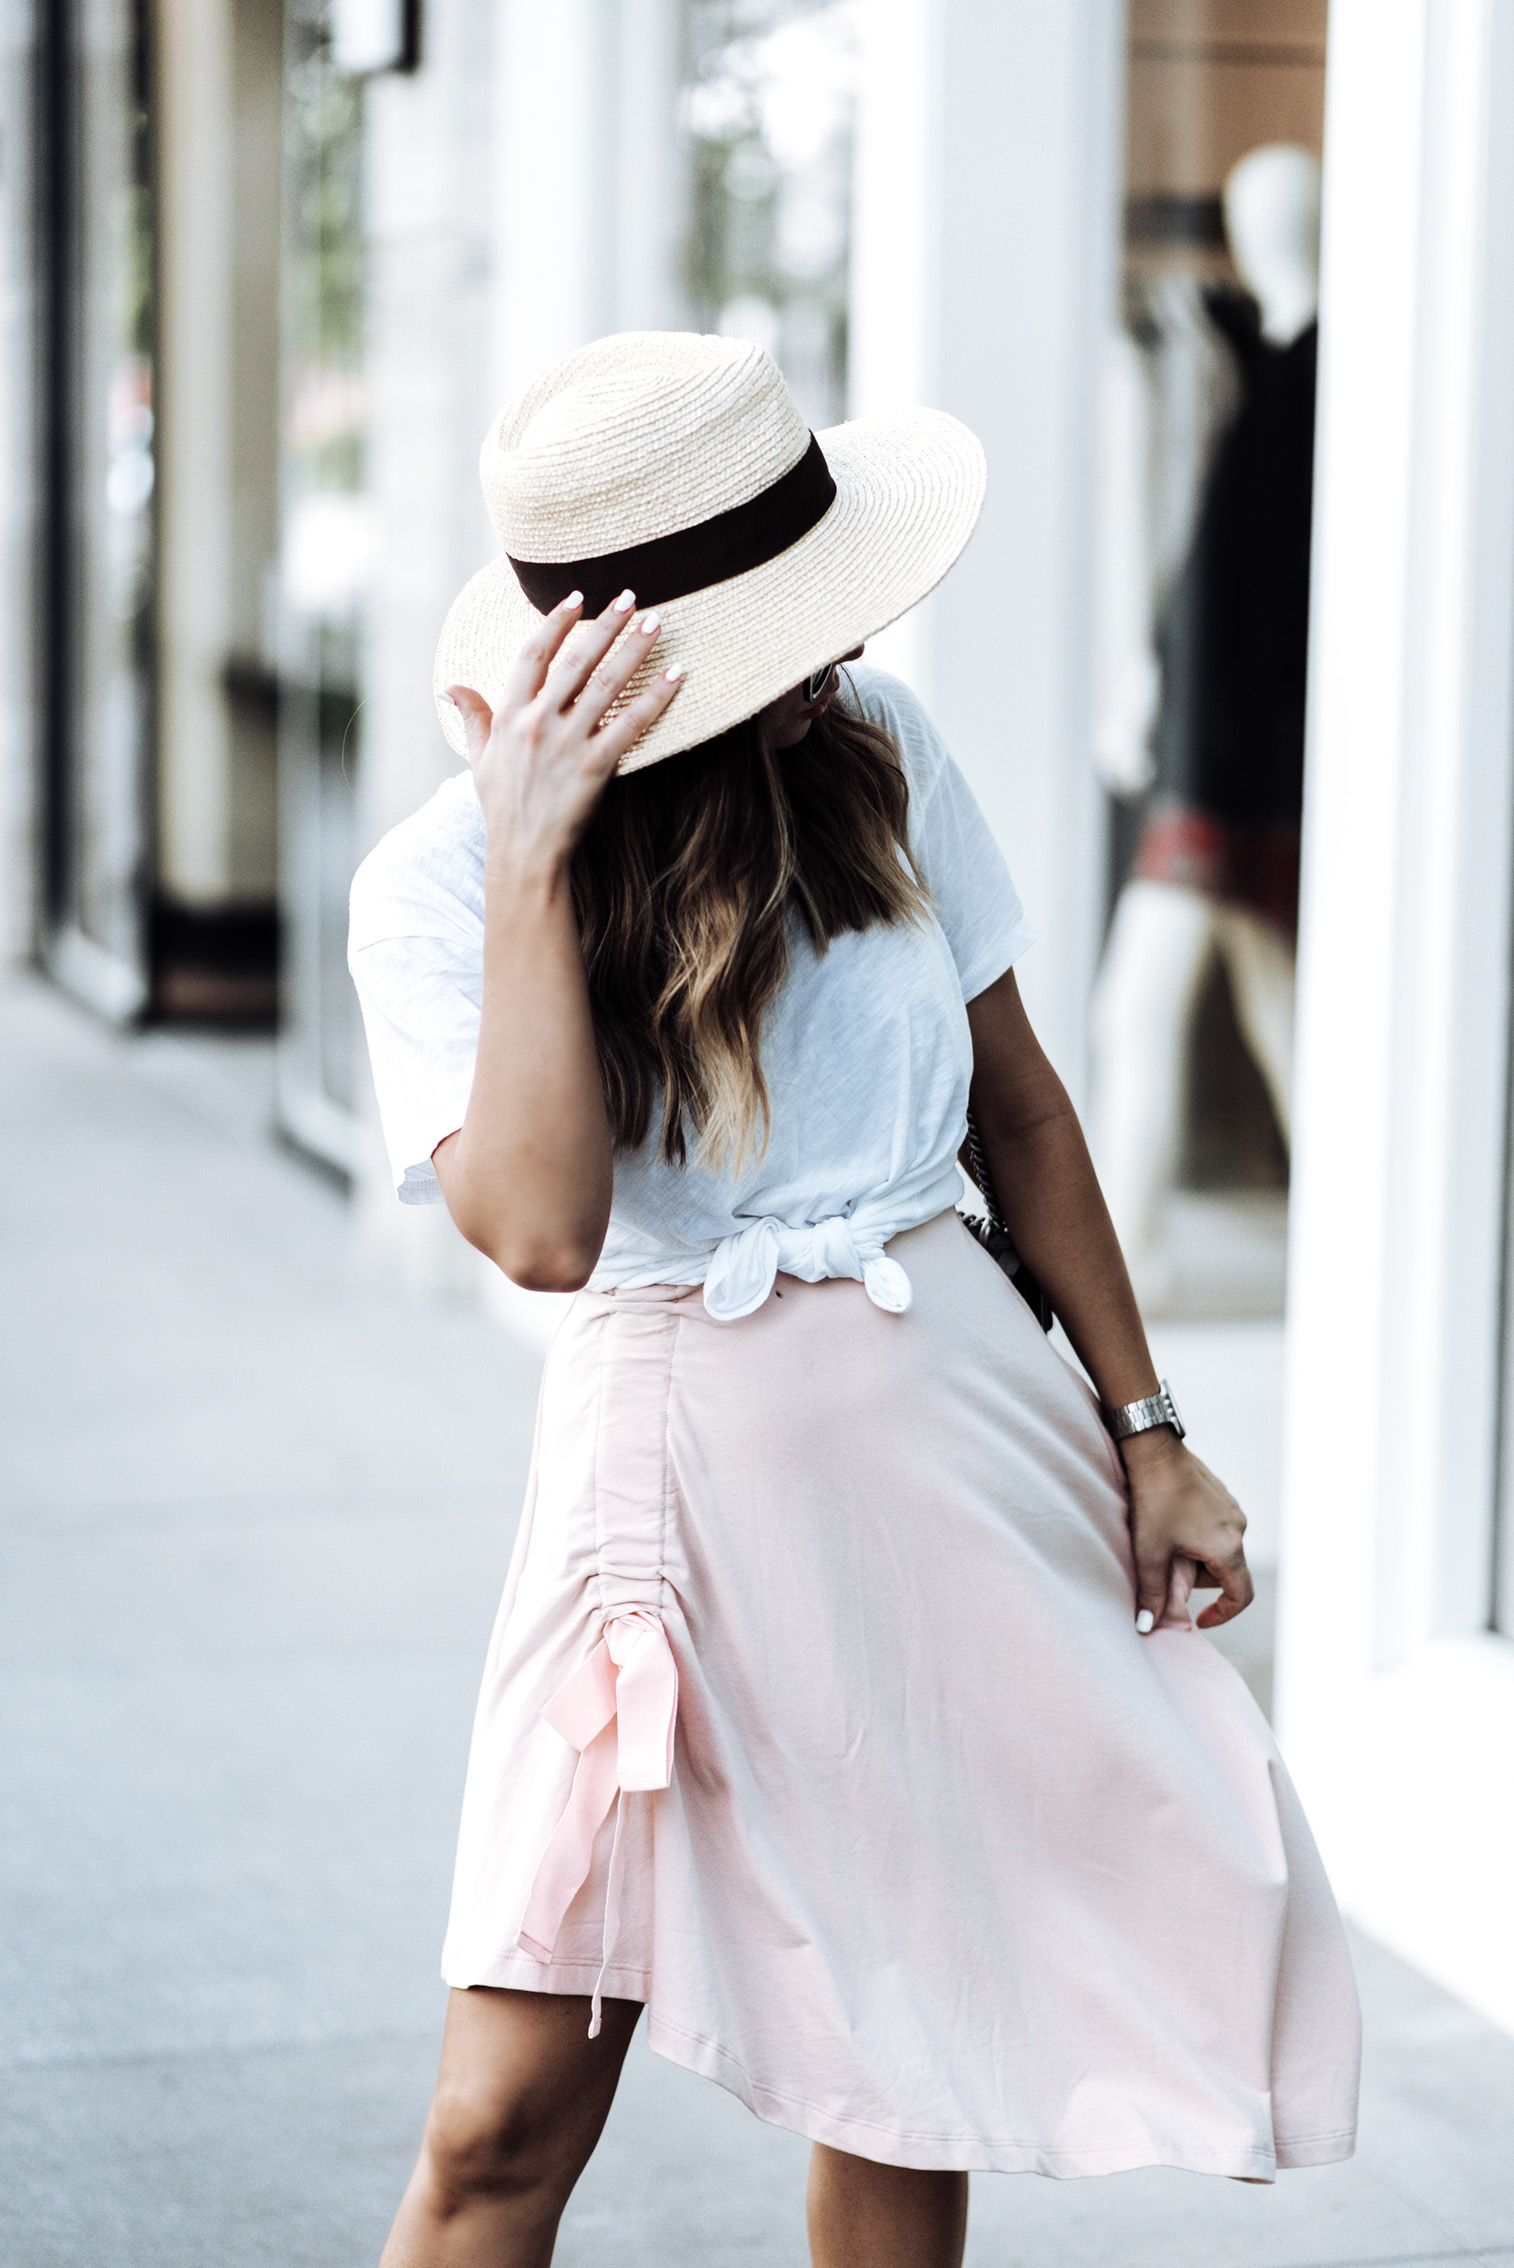 Tiffany Jais Houston fashion and lifestyle blogger | ASOS pink skirt | Cotton crew neck tee | {C/O}  Greats sneakers | Gucci Dionysus Bag | Brixton Willow hat | {C/O} Mini Marie Pendant | Streetsyle blogger